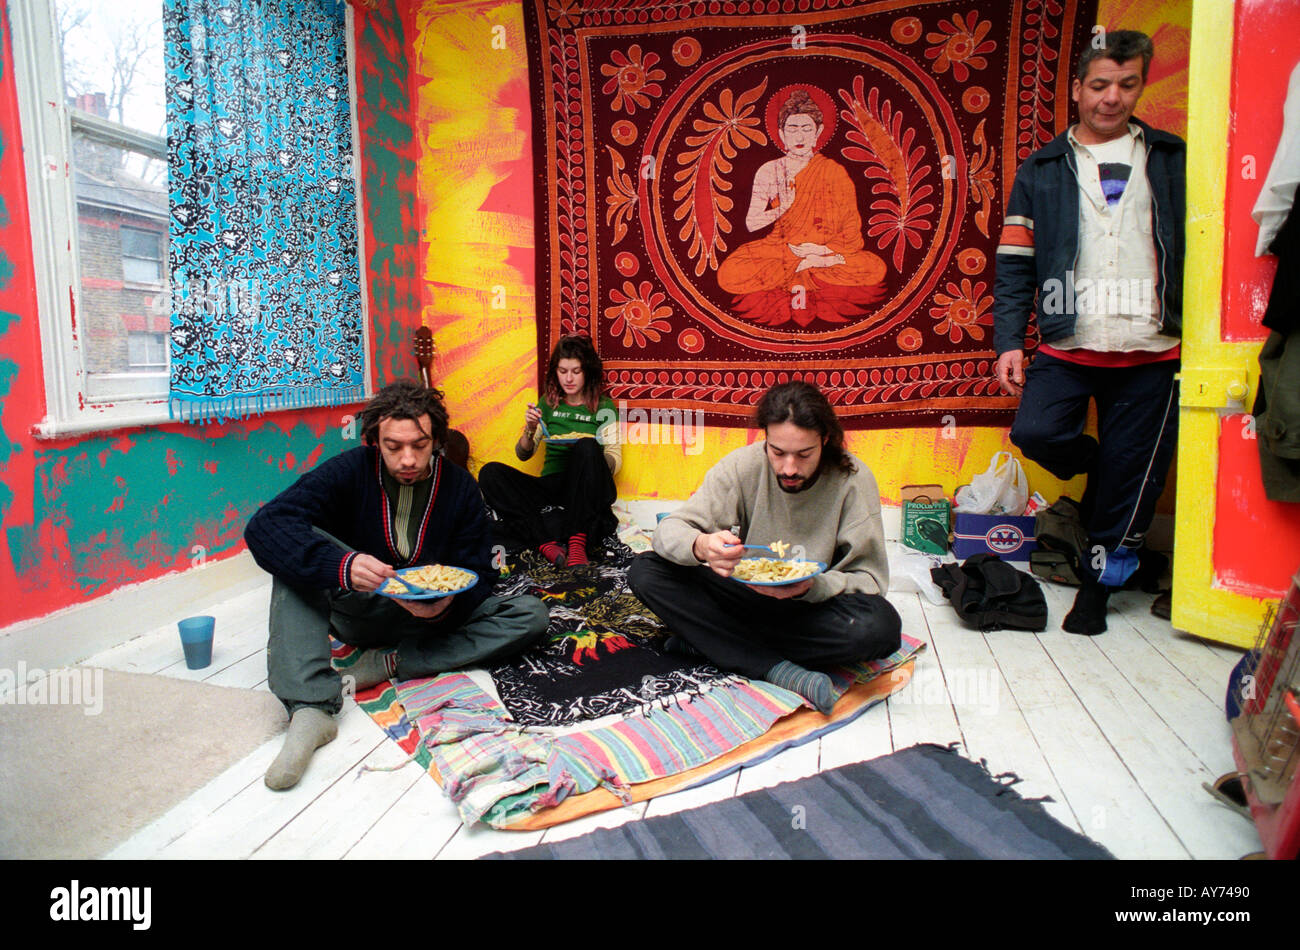 squatters having a meal in South London squat. Stock Photo